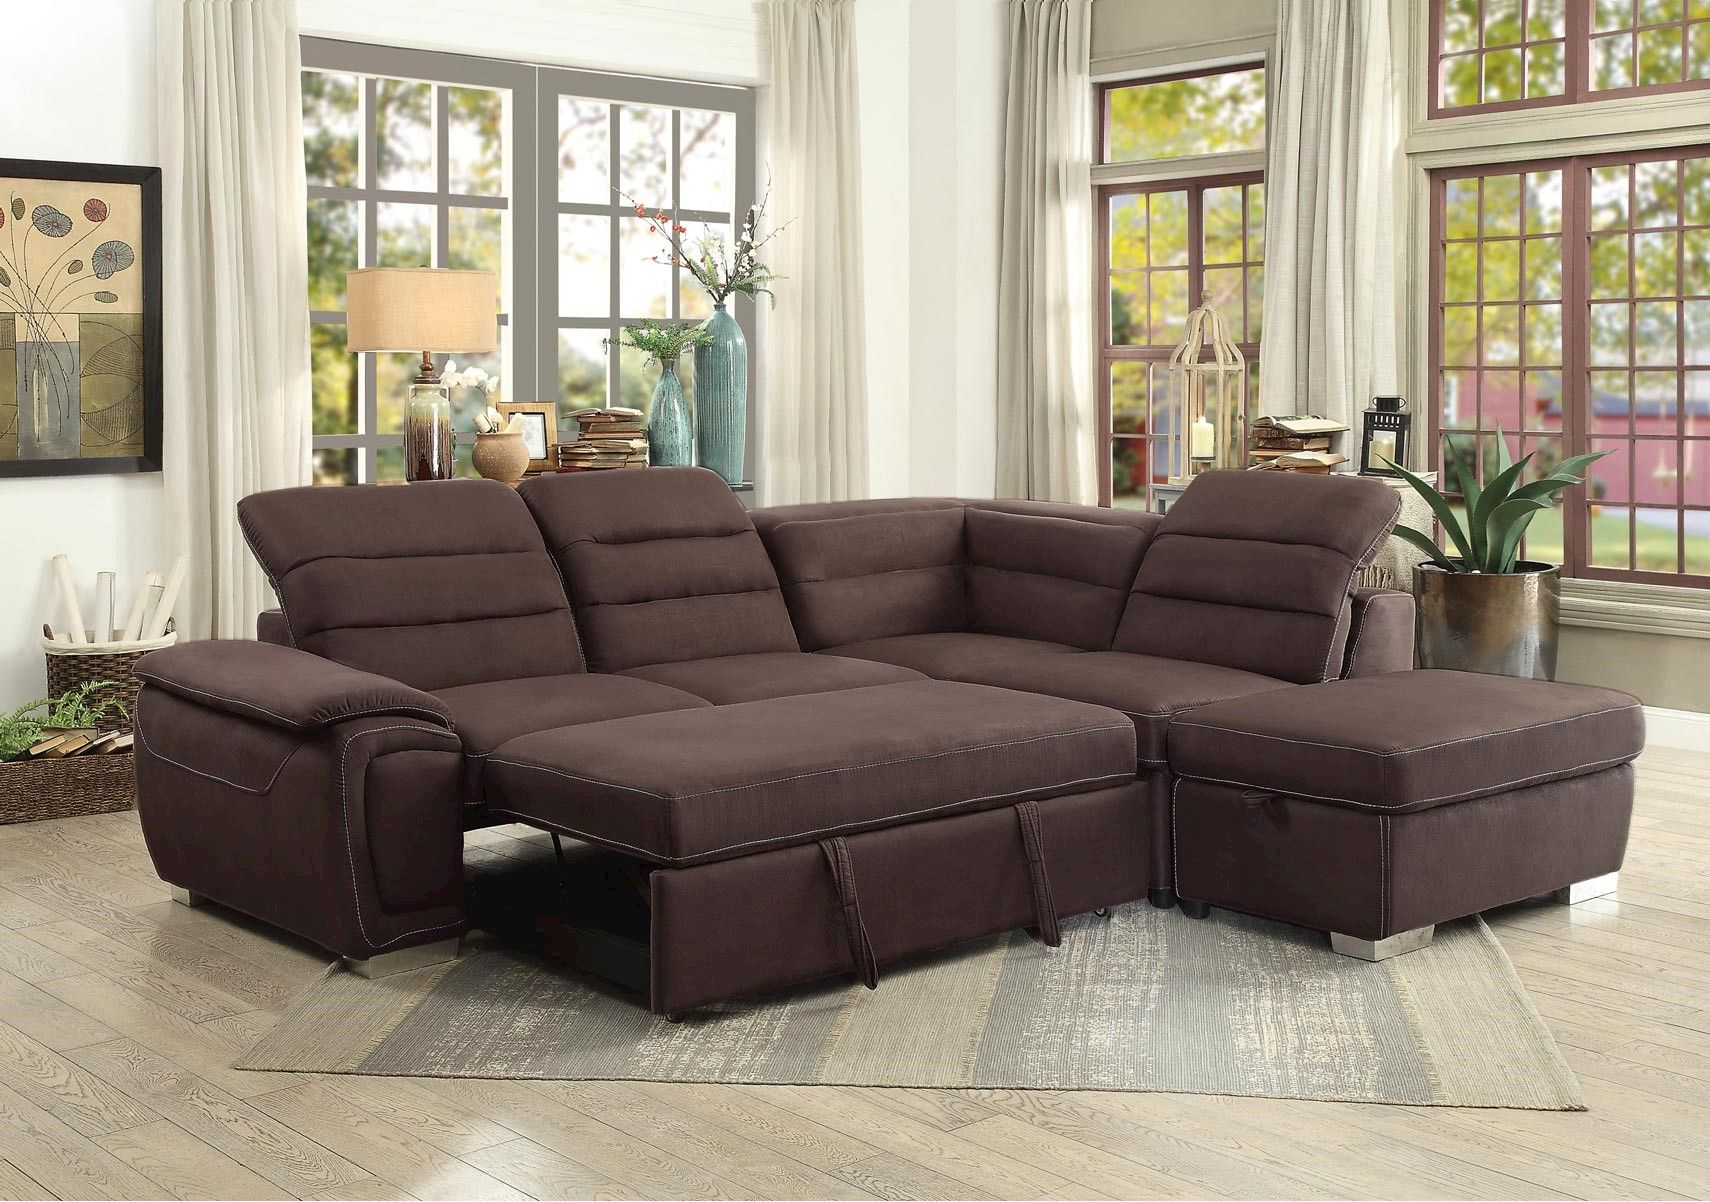 Lacks Emilio 3 Pc Sectional With Pullout Bed And Adjustable Headrest Sectional Sleeper Sofa Modern Sofa Sectional Small Sectional Sleeper Sofa